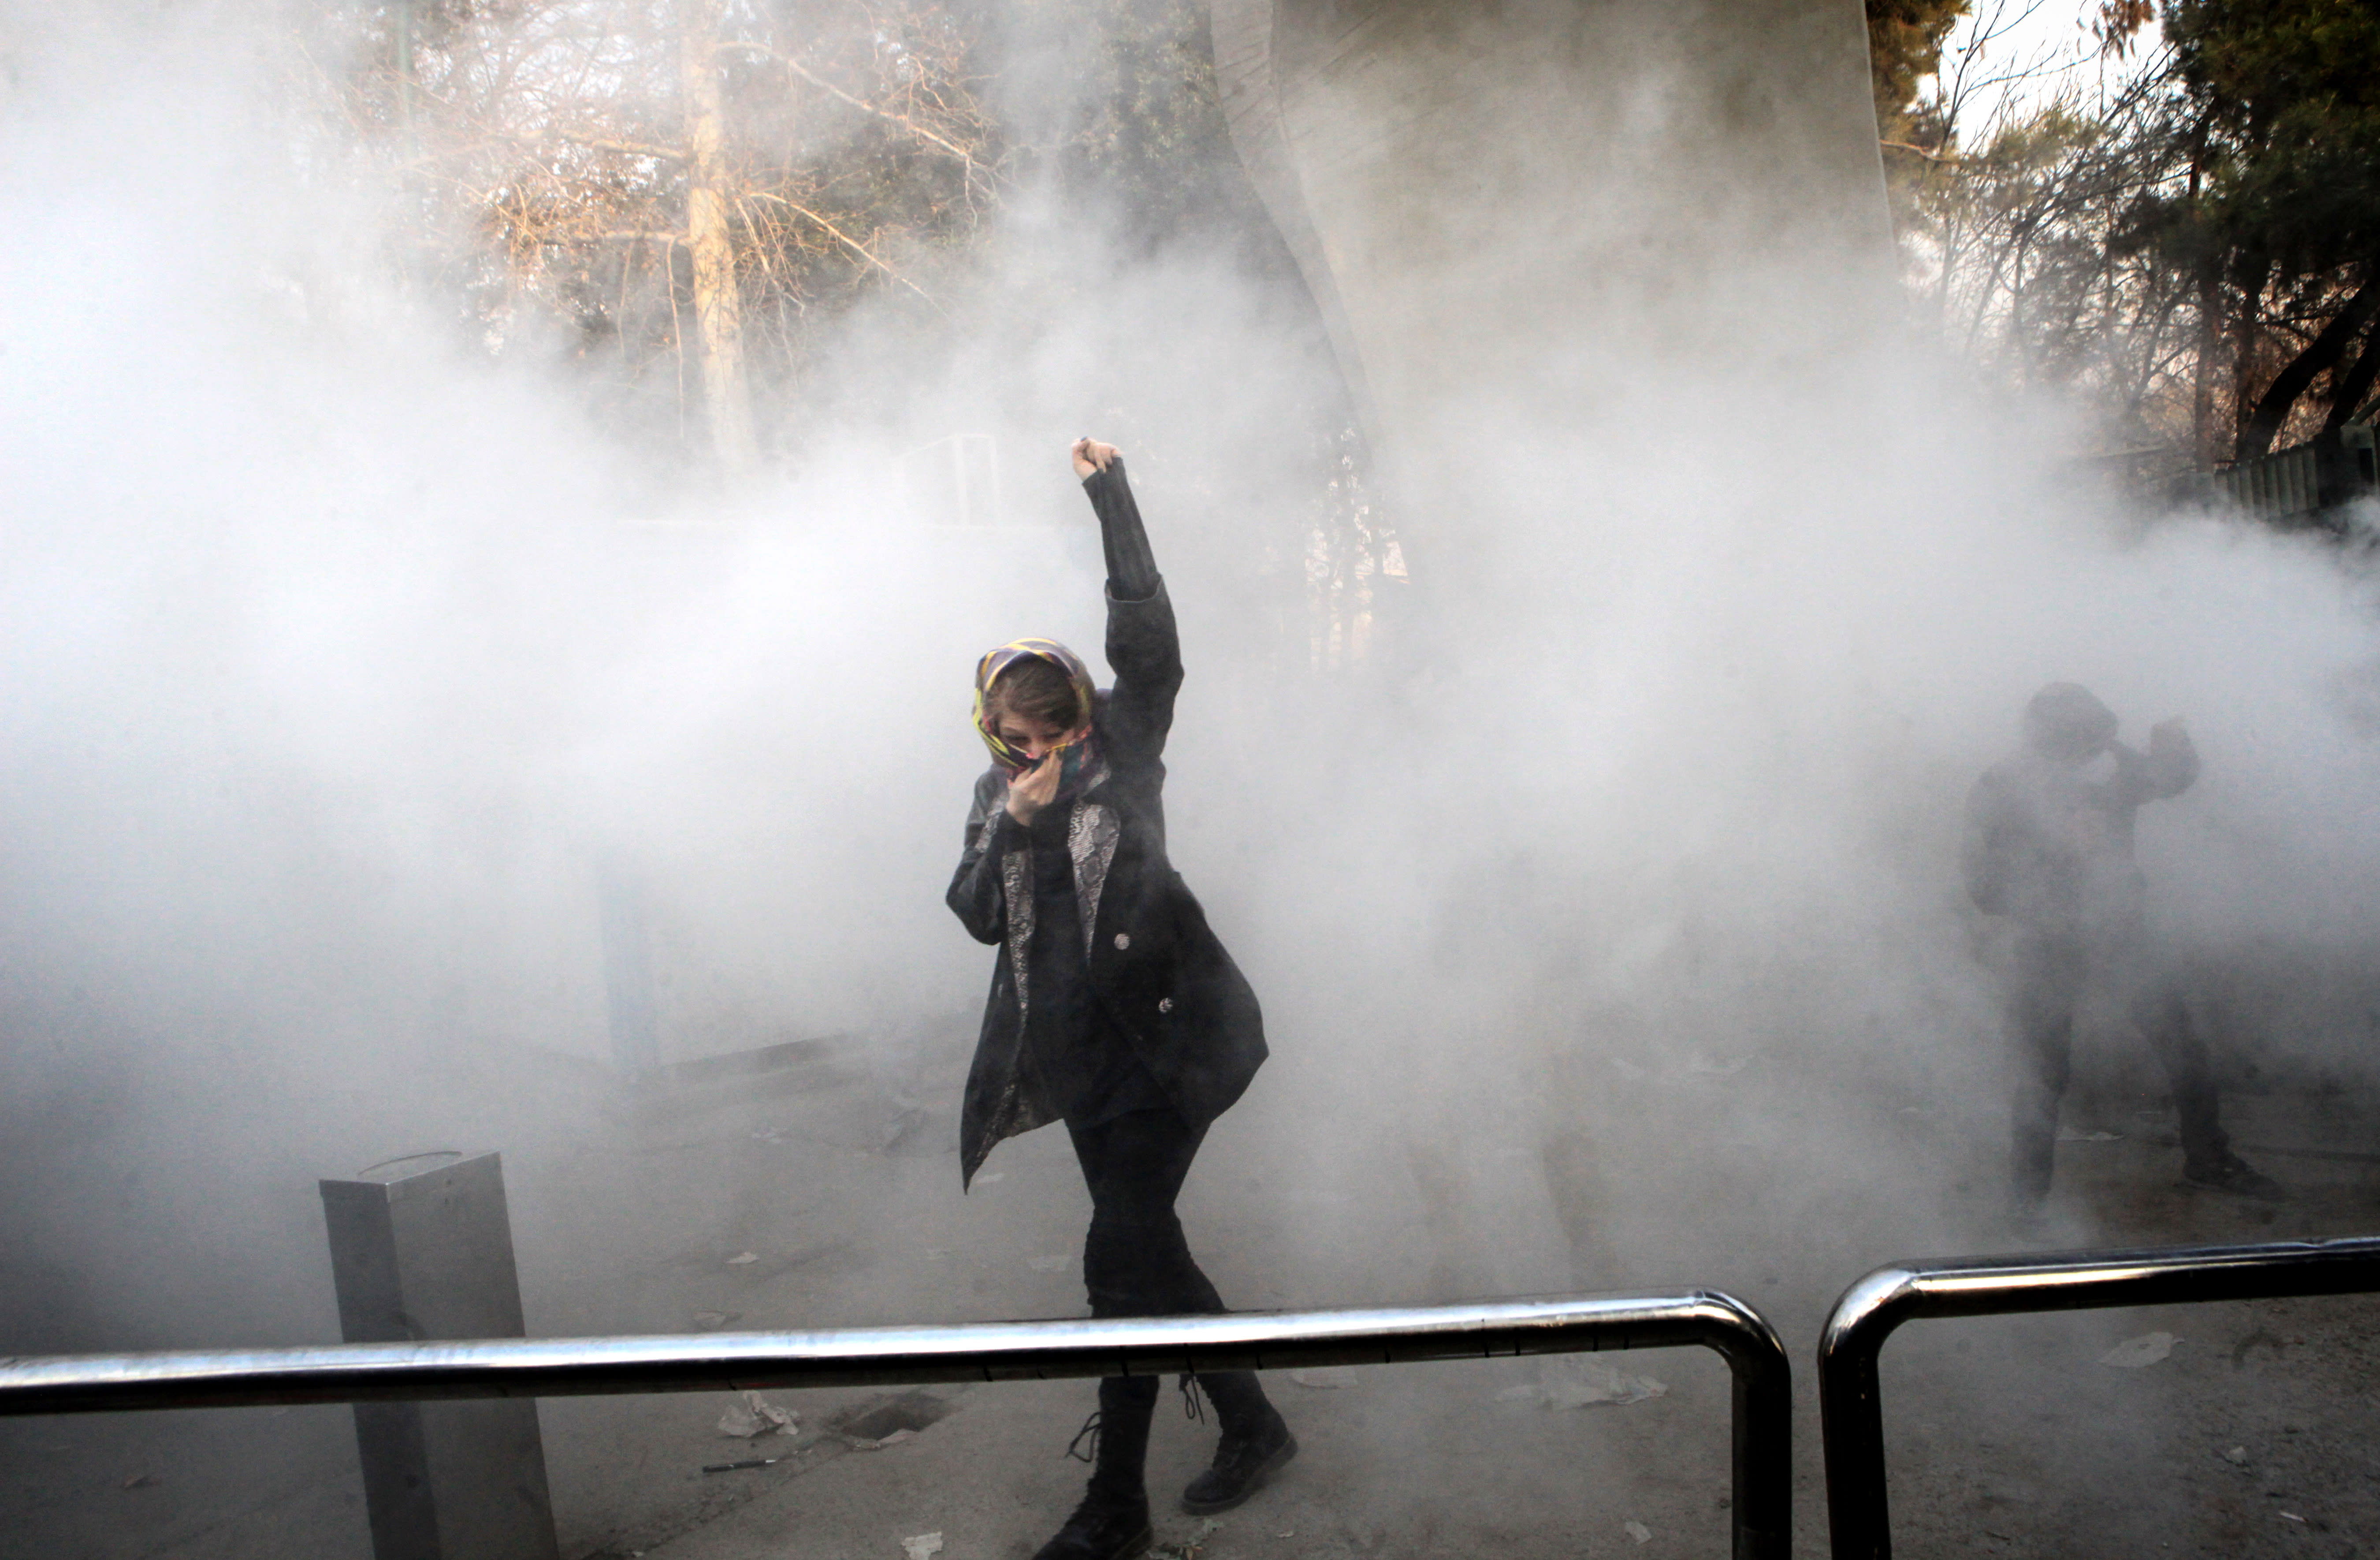 An Iranian woman raises her fist amid the smoke of tear gas at the University of Tehran during a protest on December 30, 2017 (STR/AFP)